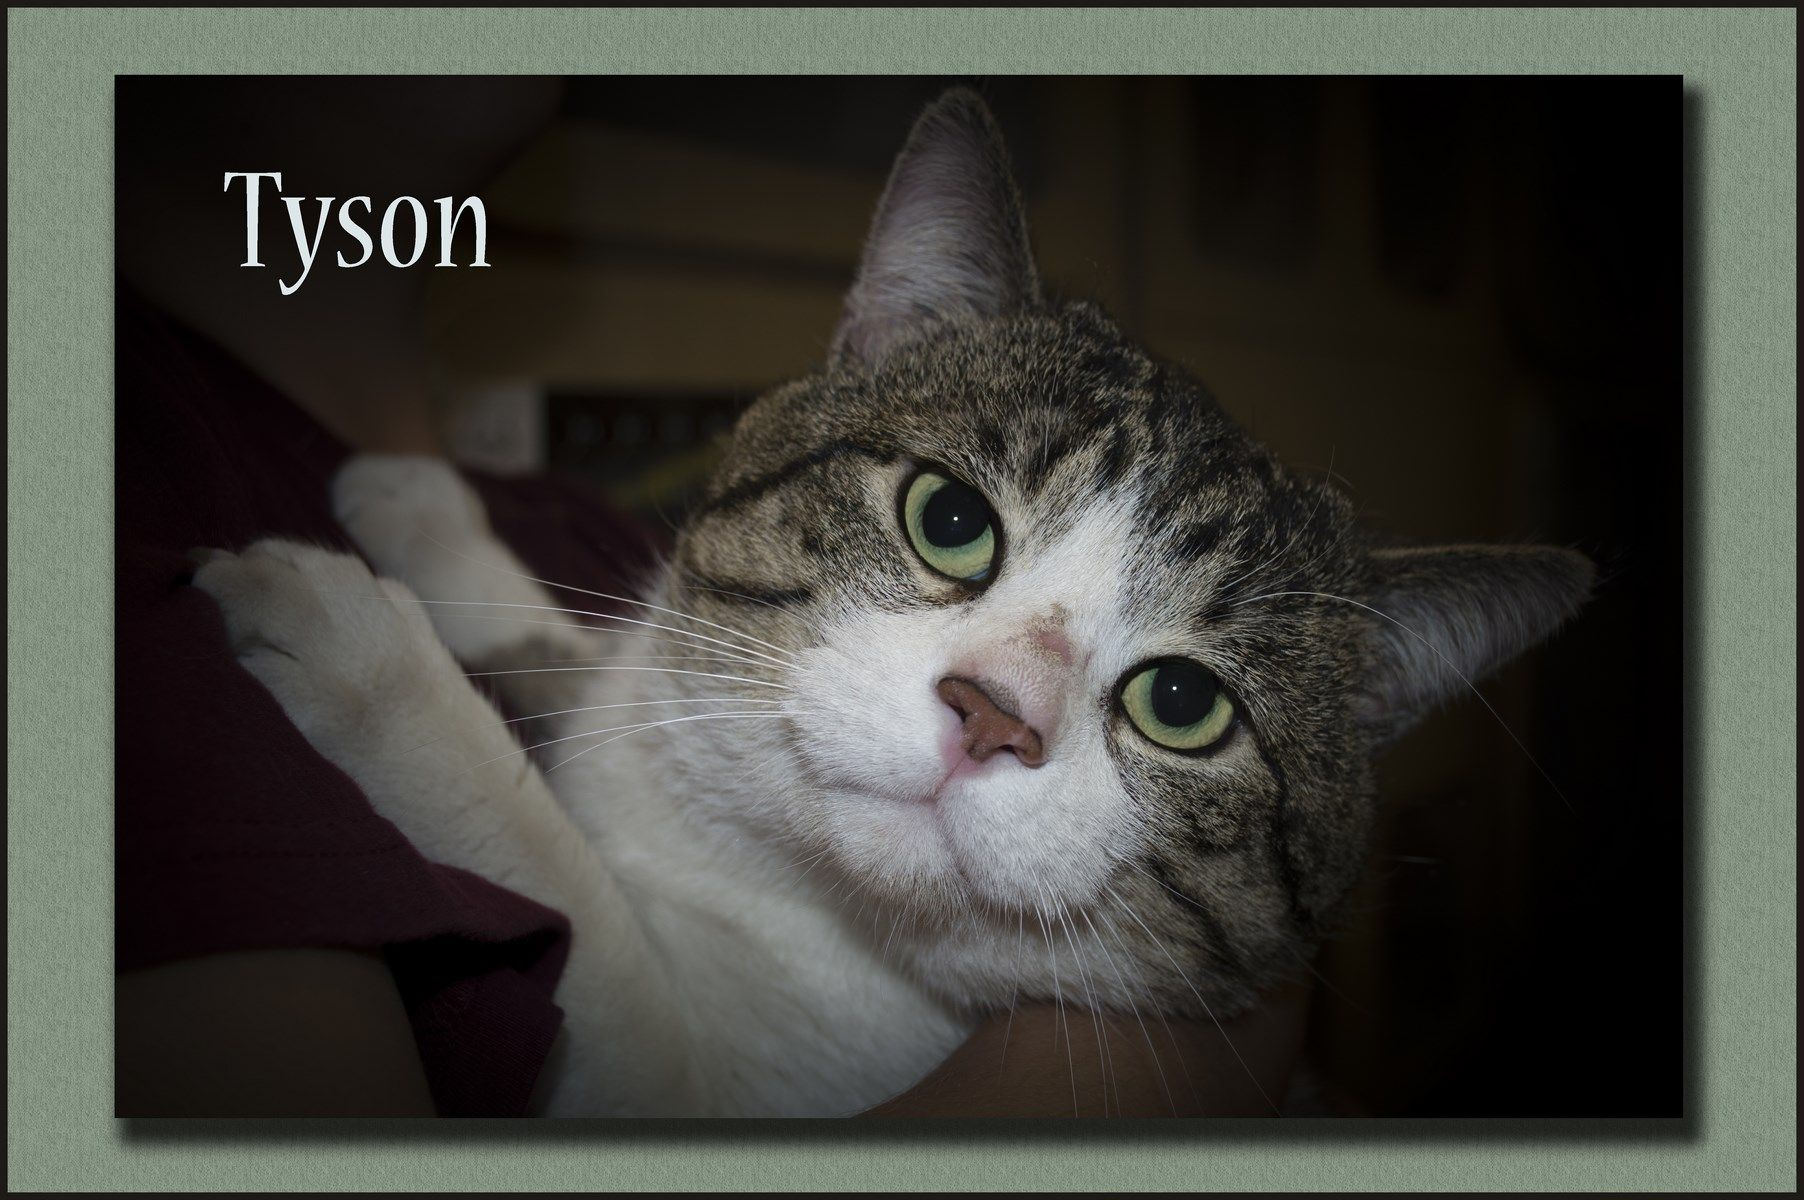 Tyson - I am a former fighter with a soft voice. I am a big guy who ...